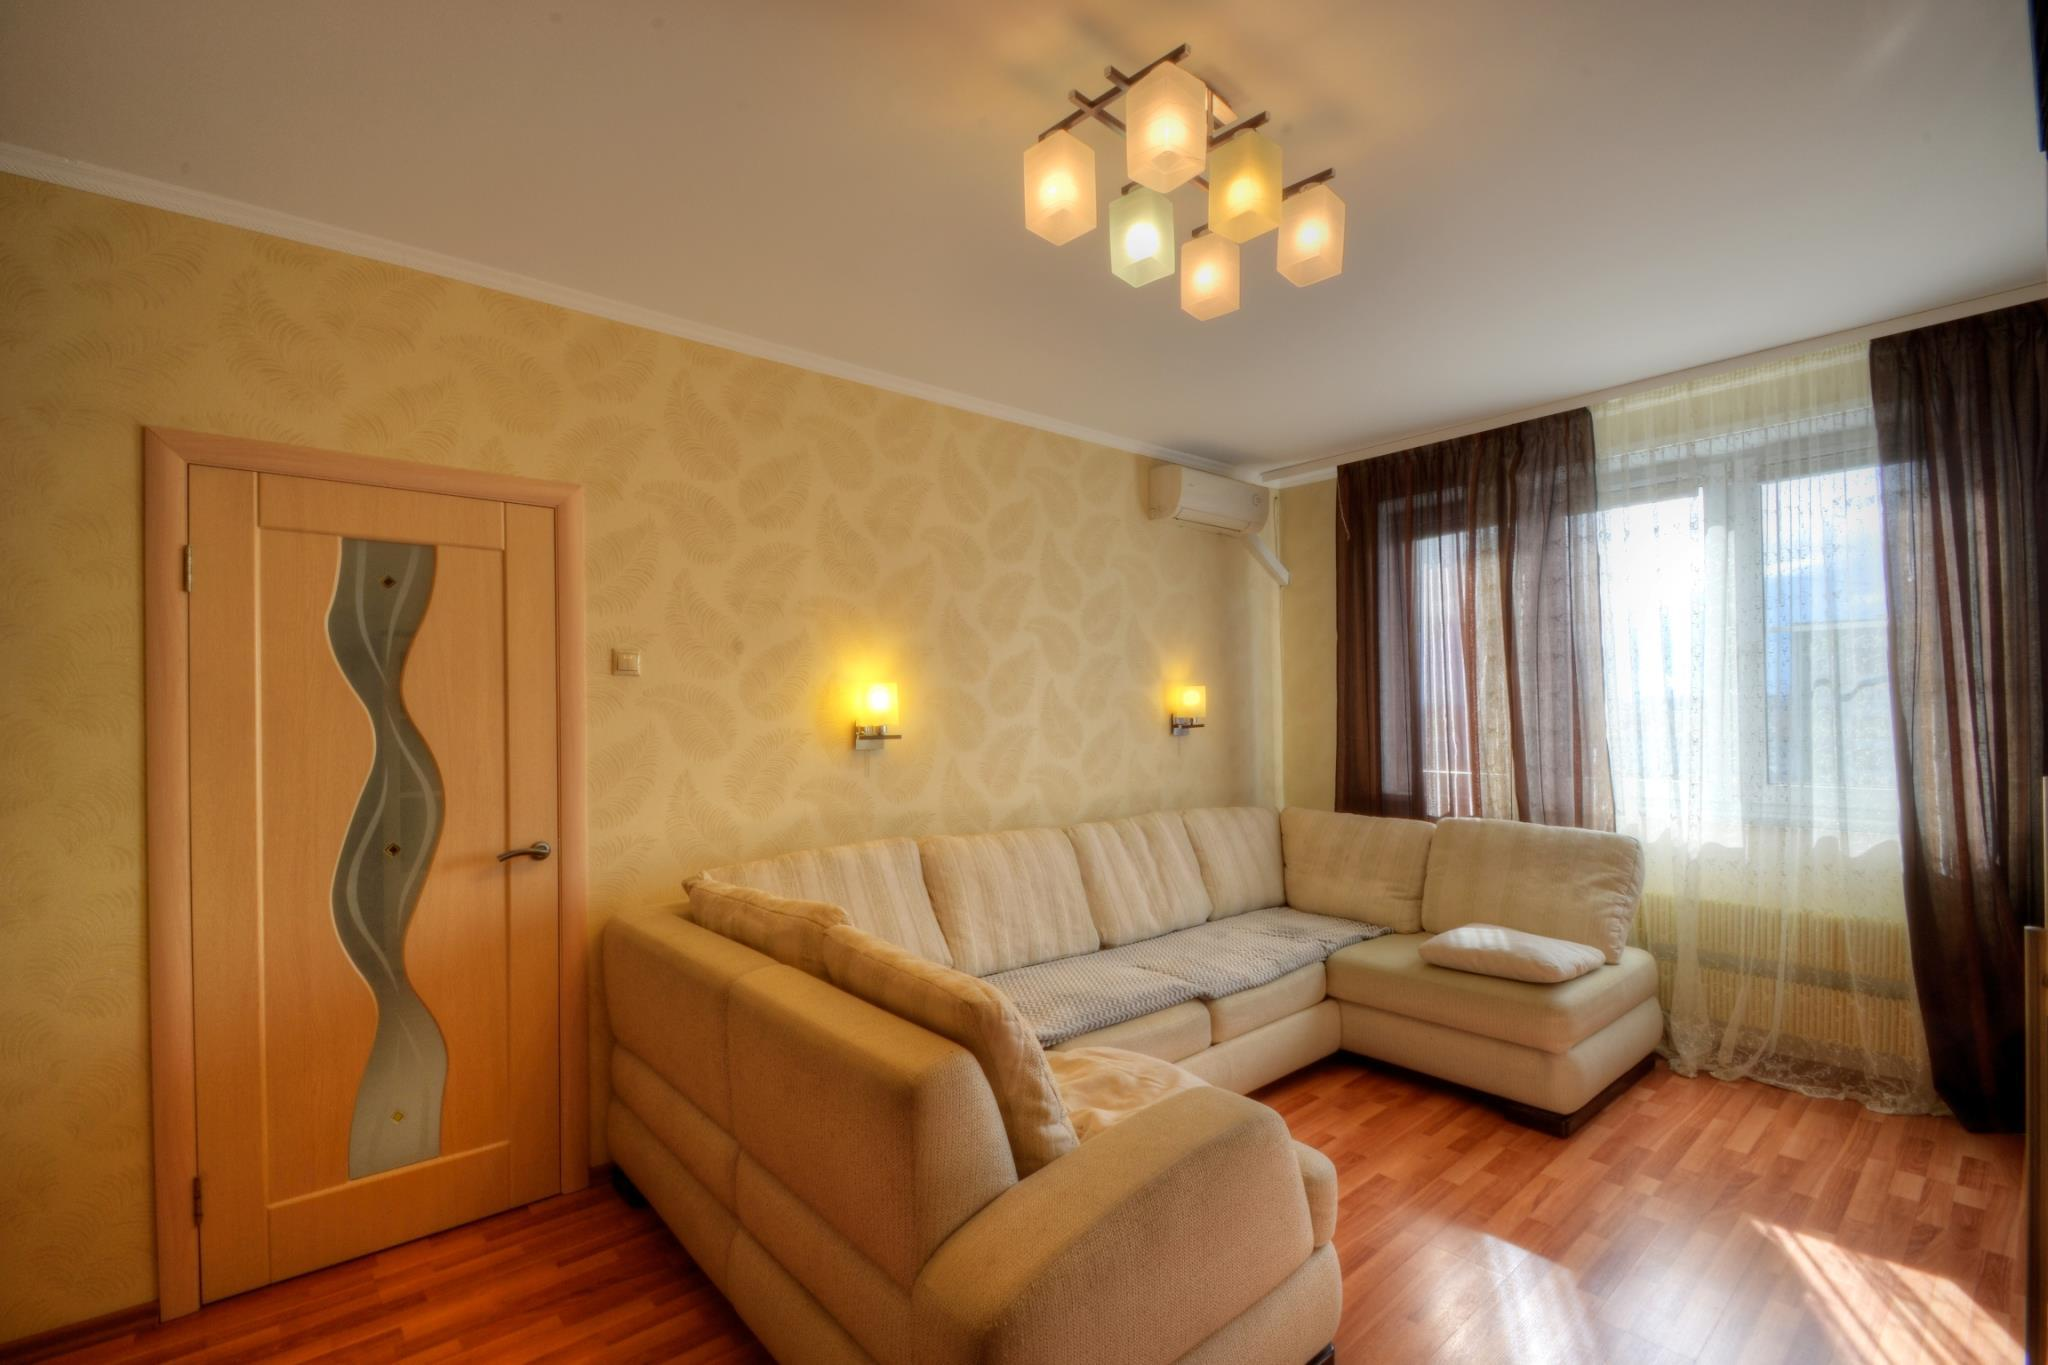 Luxury Apartments In Altufyevo With The Large Sofa